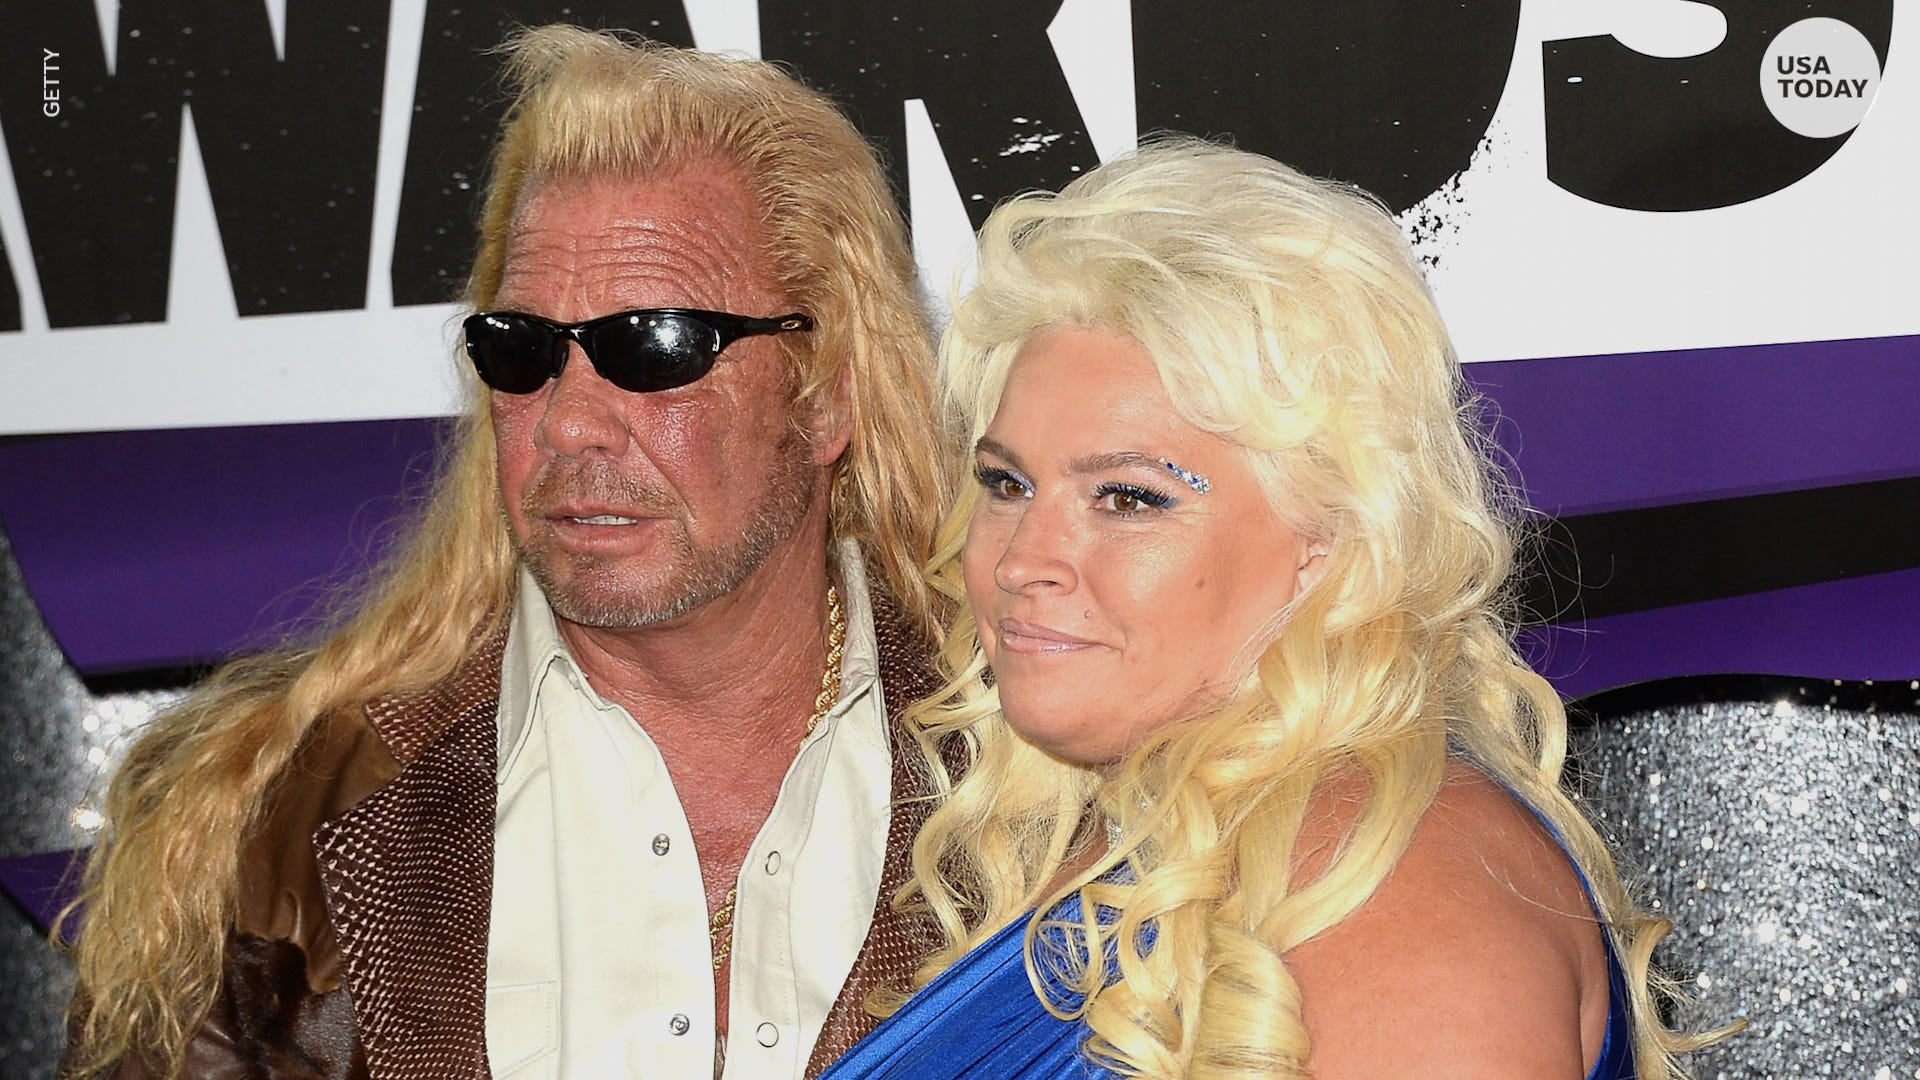 Duane 'Dog' Chapman Opens Up About Grieving Wife: 'There'll Never Be Another Beth' 6a378b49-9b80-4442-8a47-7f20d72b4efa-VPC_BETH_CHAPMAN_HOSPITALIZED_DESK_THUMB.00_00_36_14.Still005